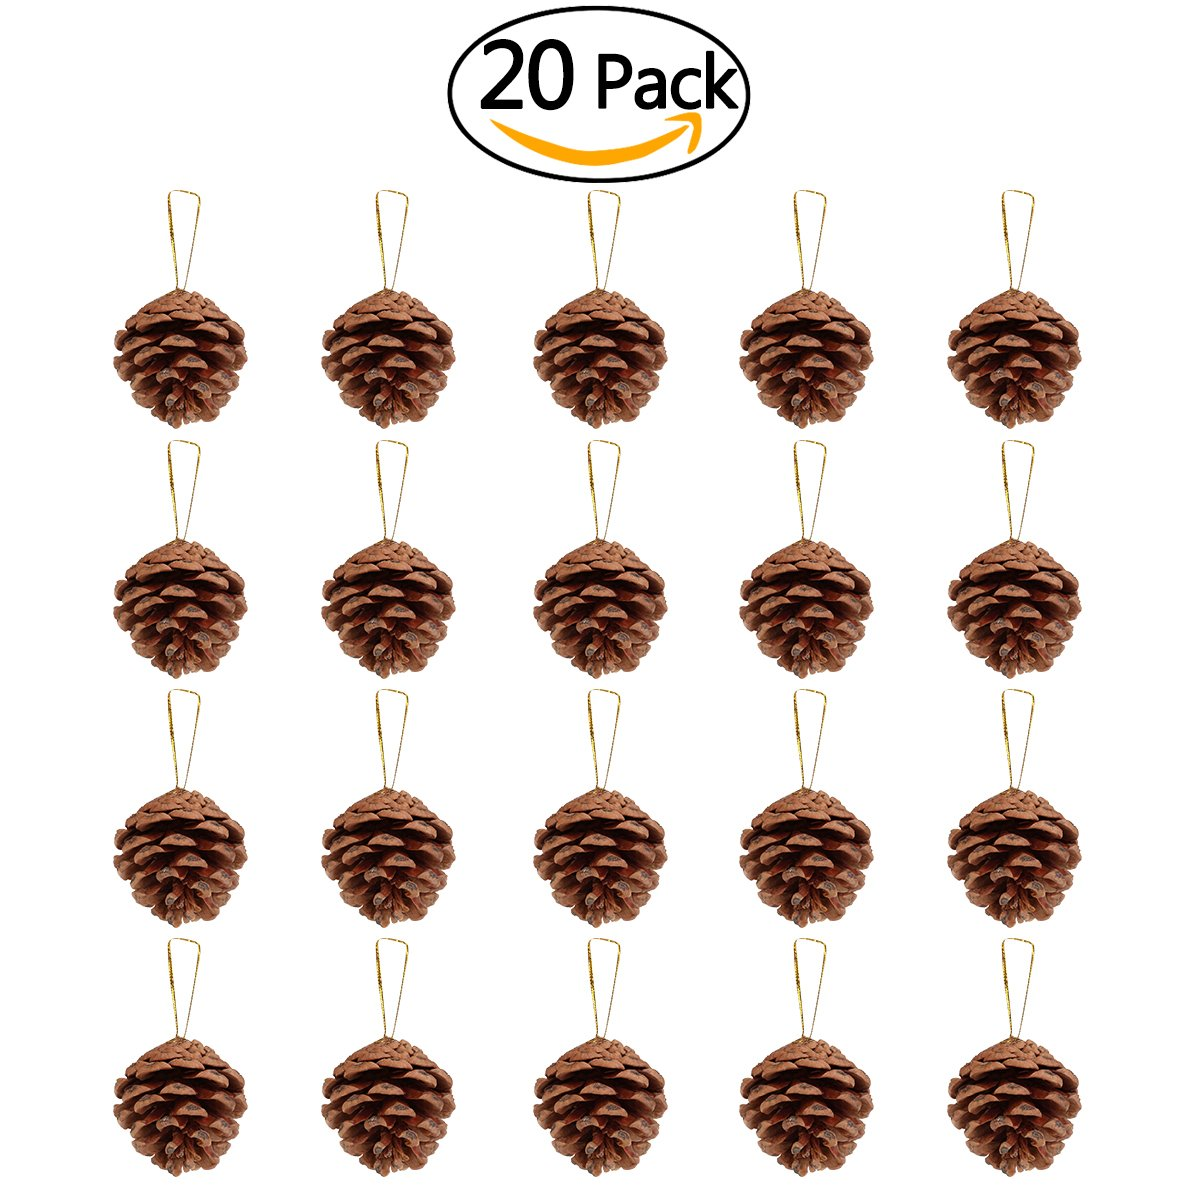 amazoncom nicexmas 20pcs 4 6cm christmas pine cones pendant with string natural wood christmas tree decoration crafts home ornament home kitchen - Pine Cone Ornaments